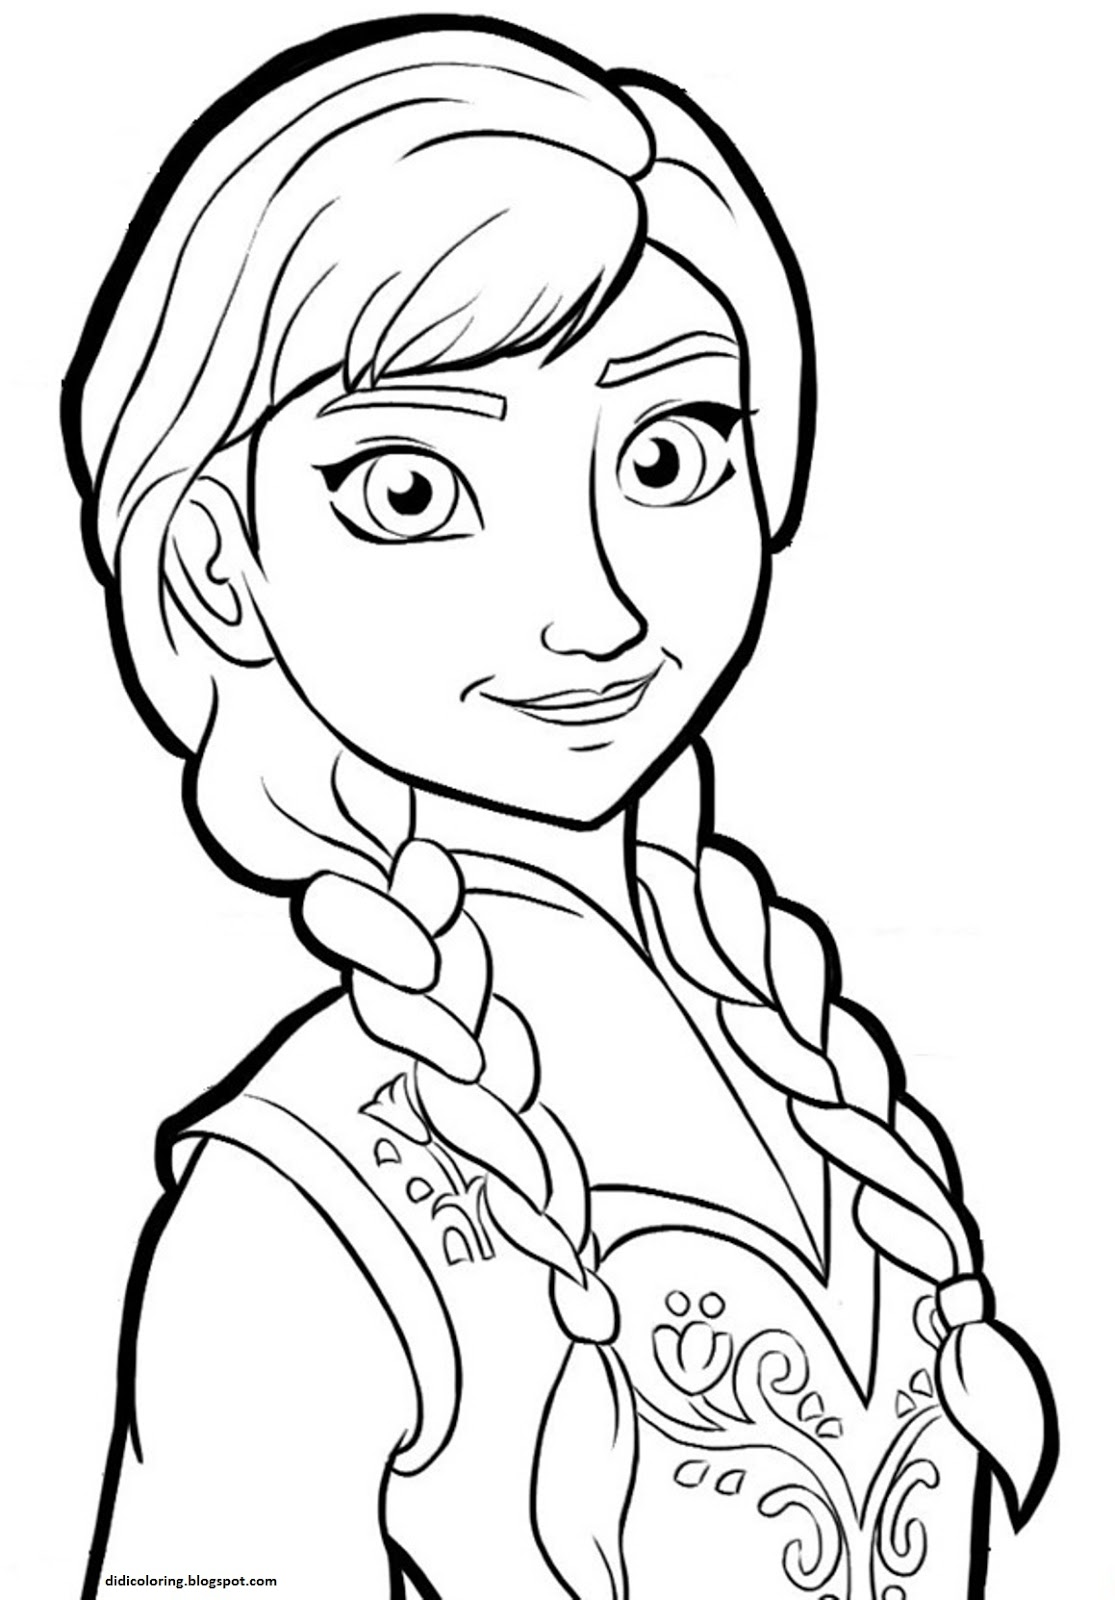 Download walt disney princess elsa and color free for Coloring pages for frozen characters